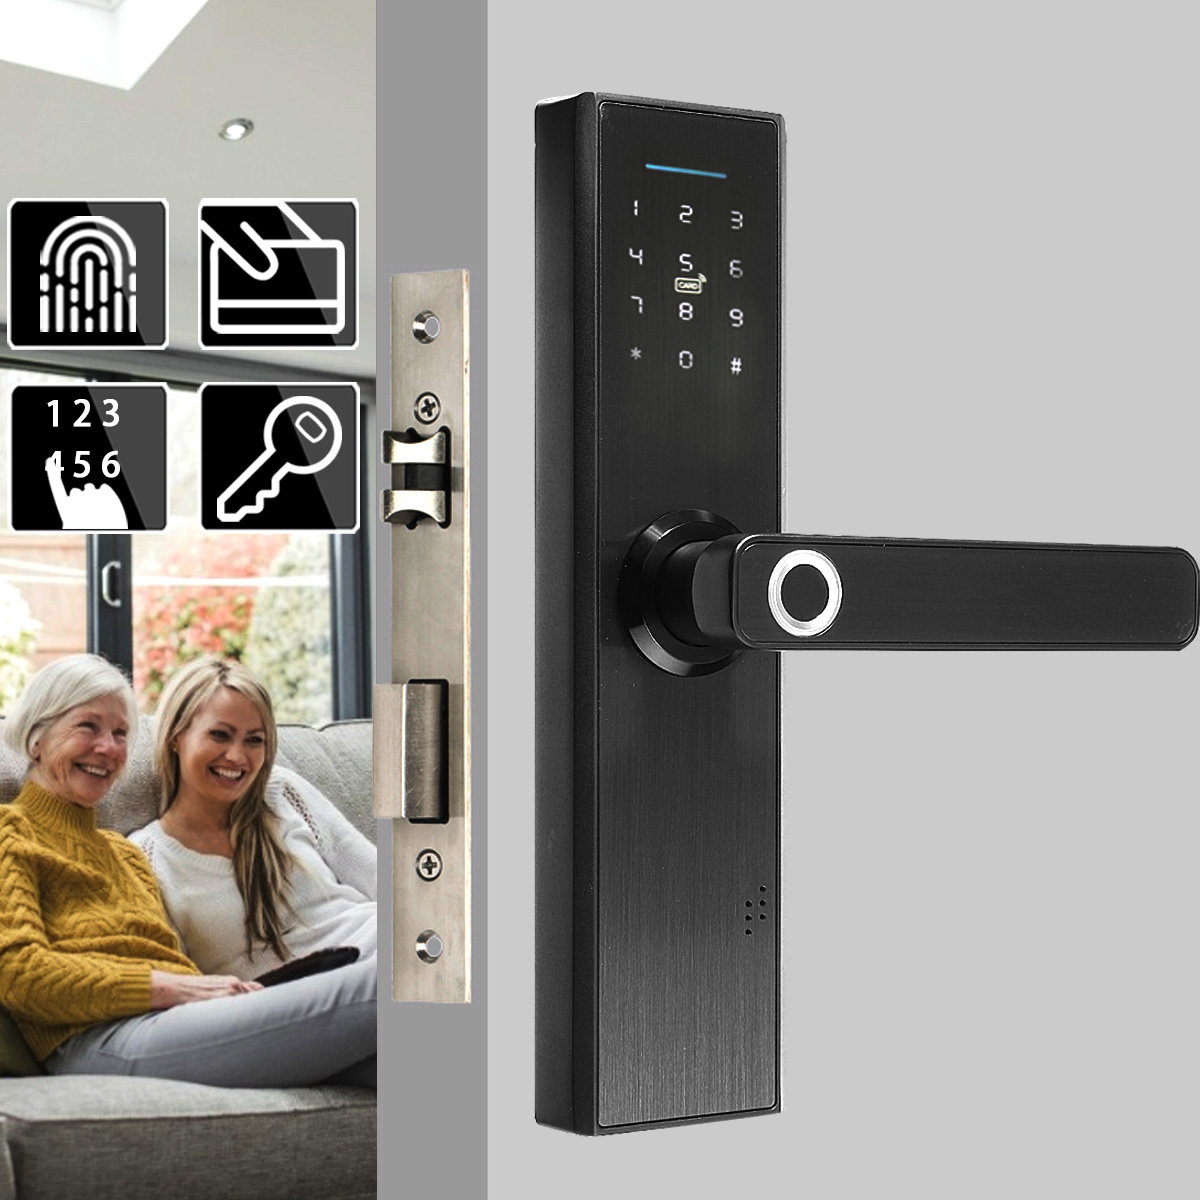 Smart Digital Door Lock Security Intelligent Electronic Lock Fingerprint / Digital Code / Smart Card / Key Home Smart Lock